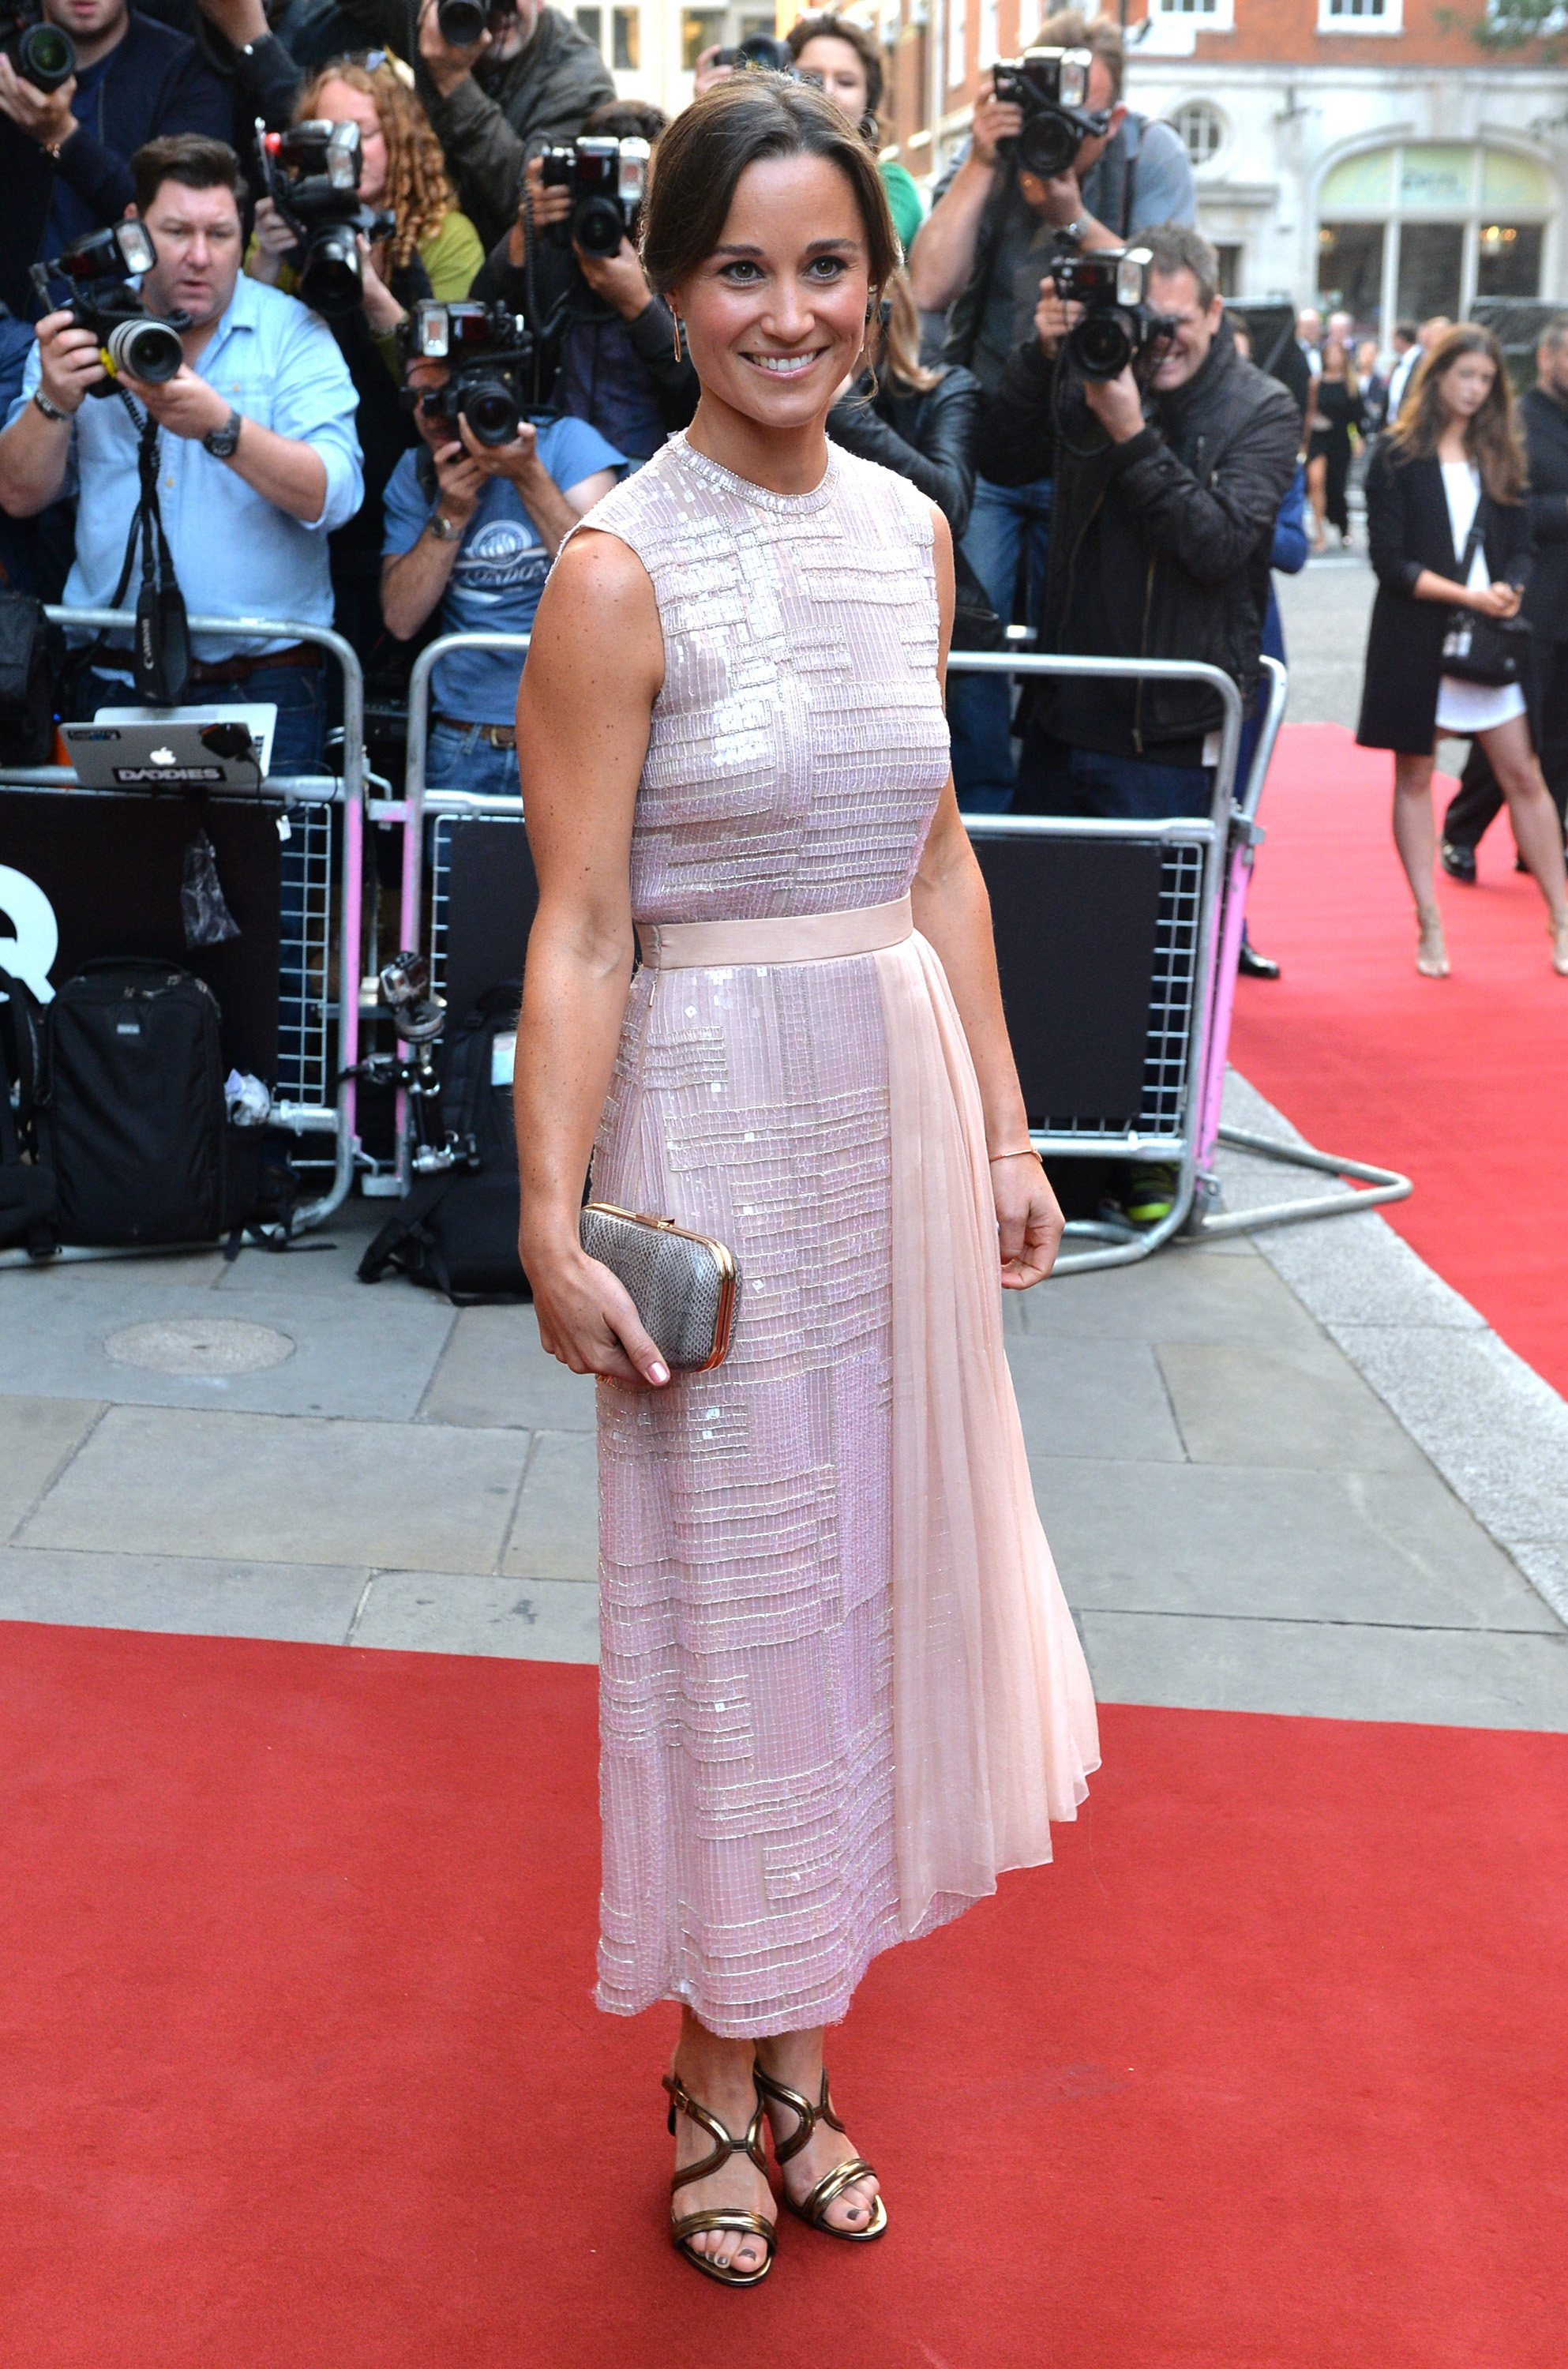 Pippa Middleton attends the GQ Men of the Year awards at The Royal Opera House on September 2, 2014 in London, England.